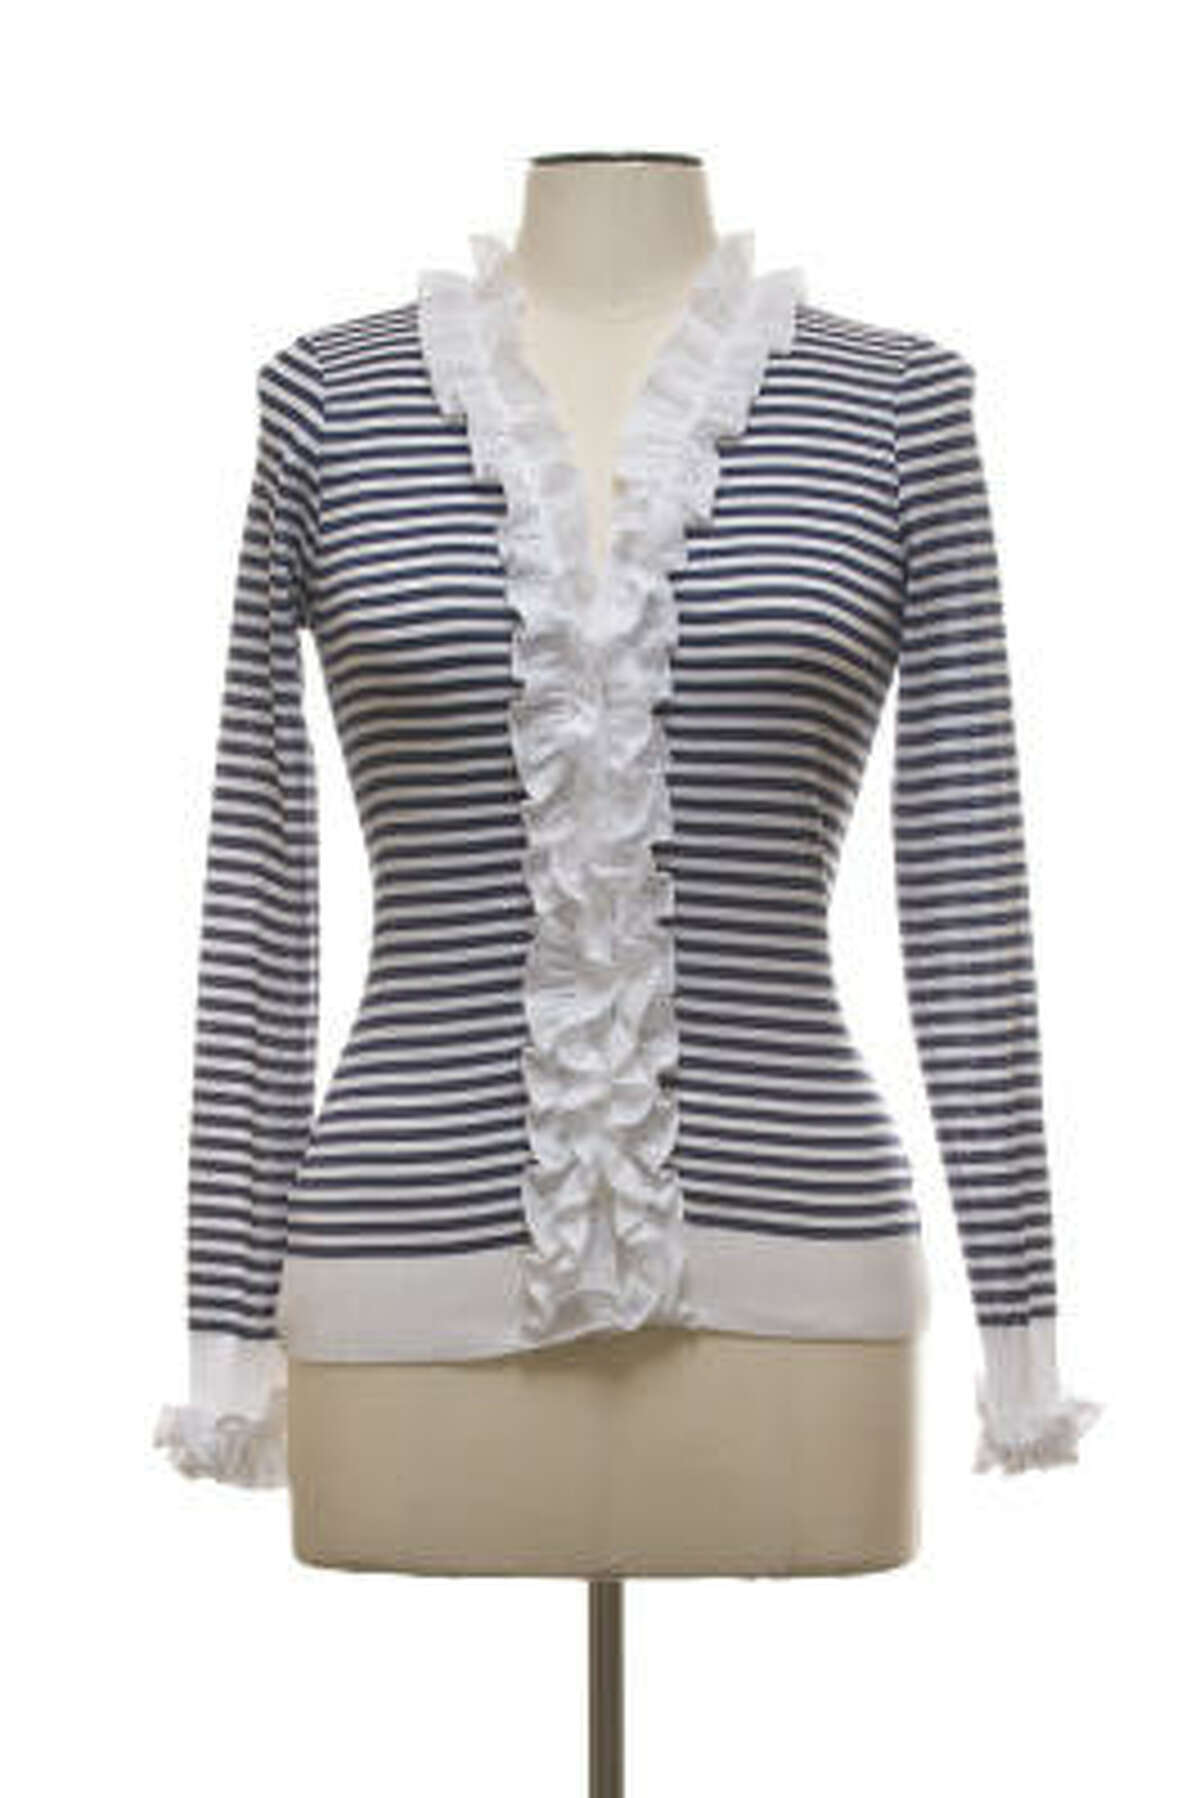 A striped sweater from Anne Fontaine's spring 2010 collection. Pair it with snappy espadrilles and white or navy jeans. Add a touch of red to make it nautical. And grab a colorful purse.